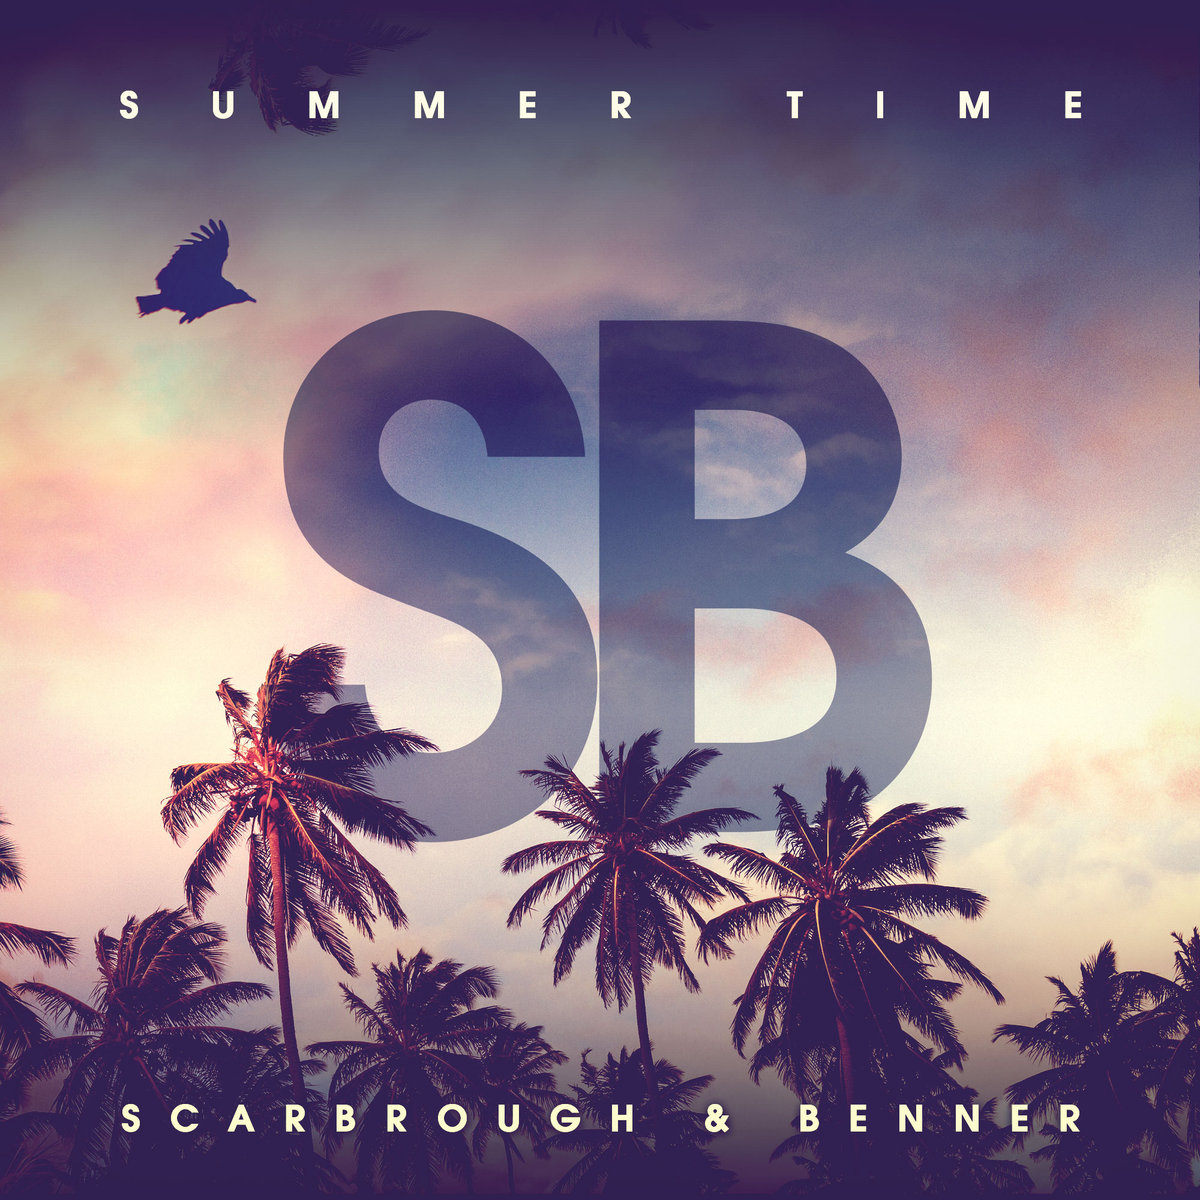 Scarbrough & Benner - The Good Stuff @ 'Summertime' album (little dragon, thievery corporation)